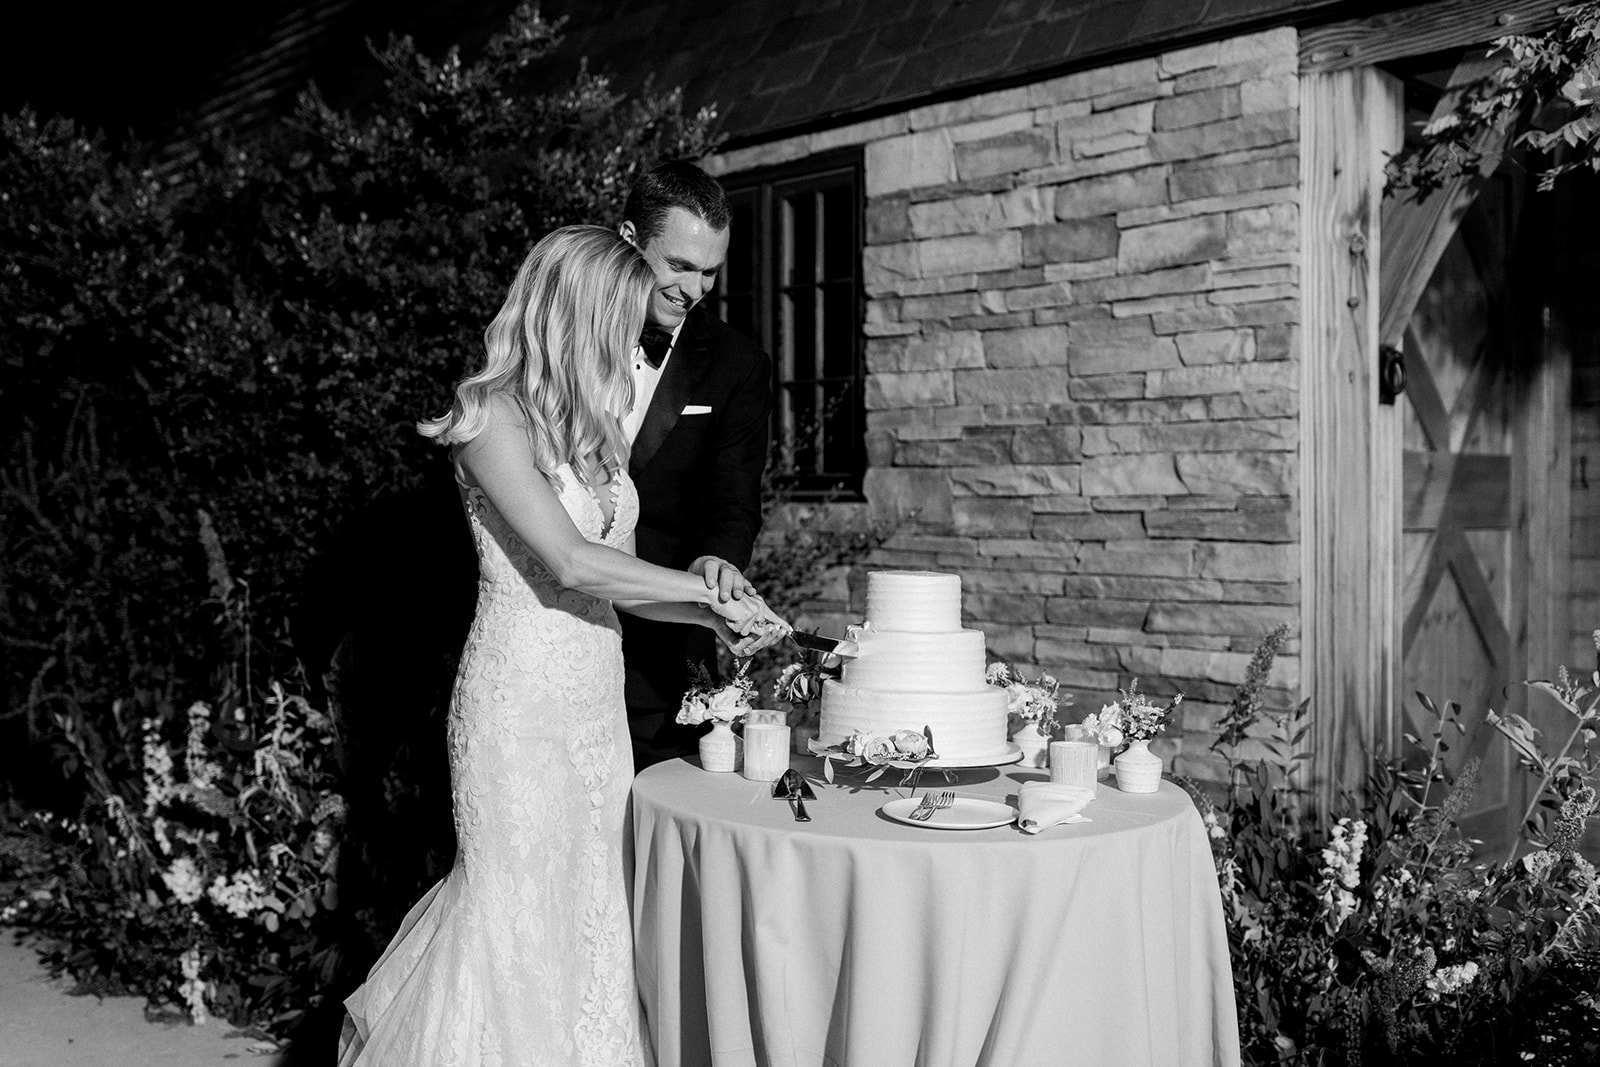 bride and groom cutting wedding cake outside